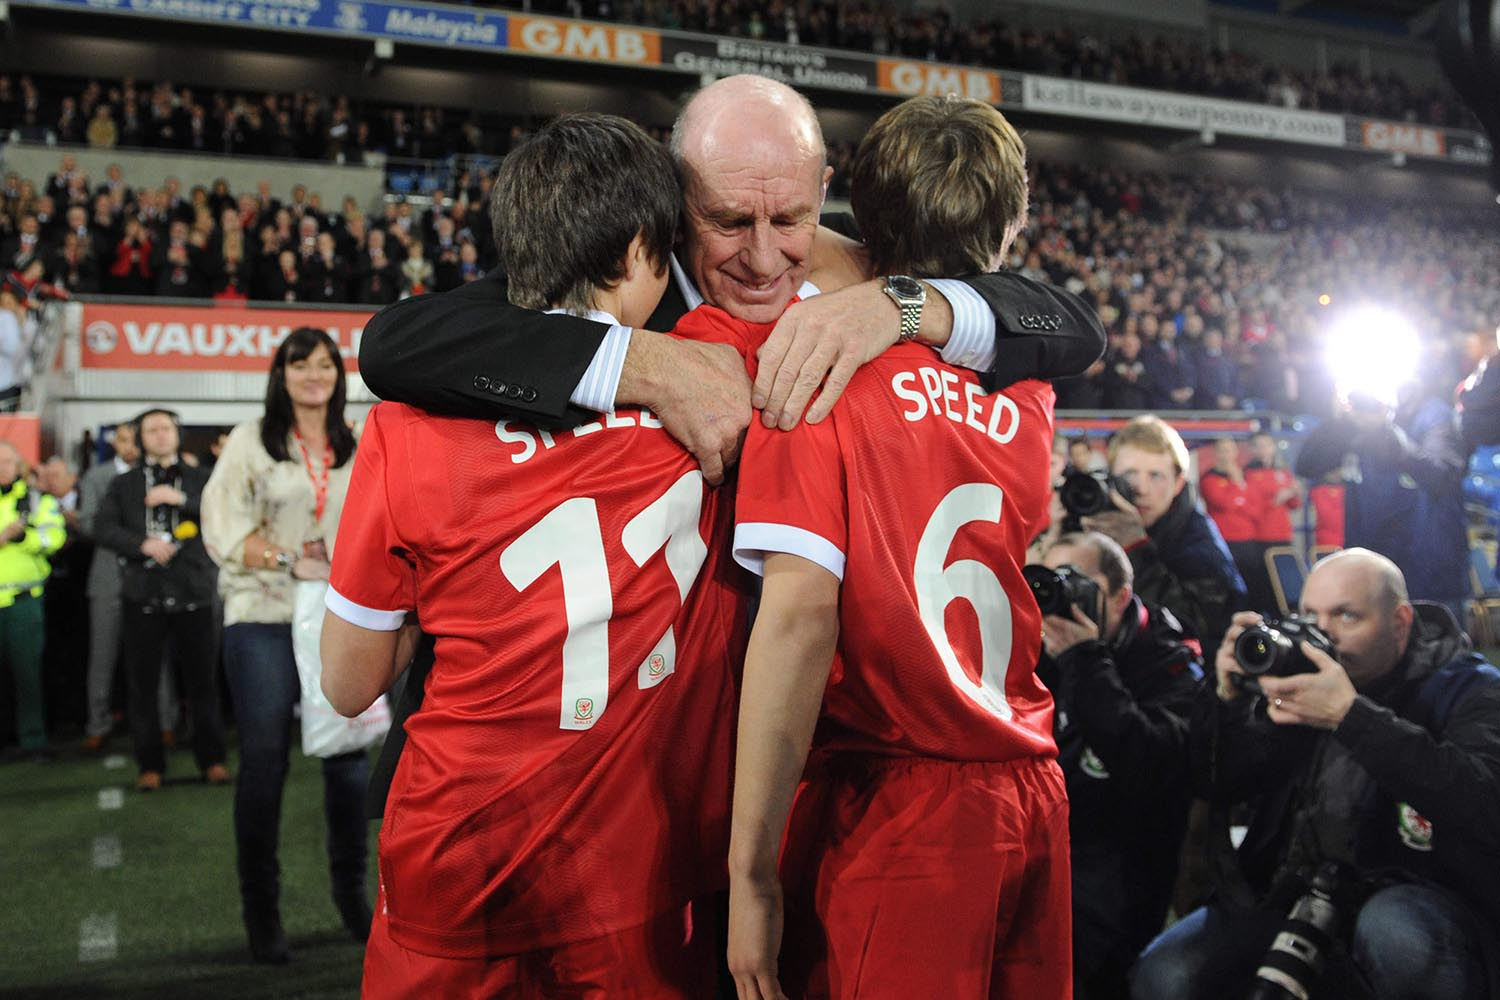 Gary Speed's father Roger hugs his grandsons Ed and Tommy